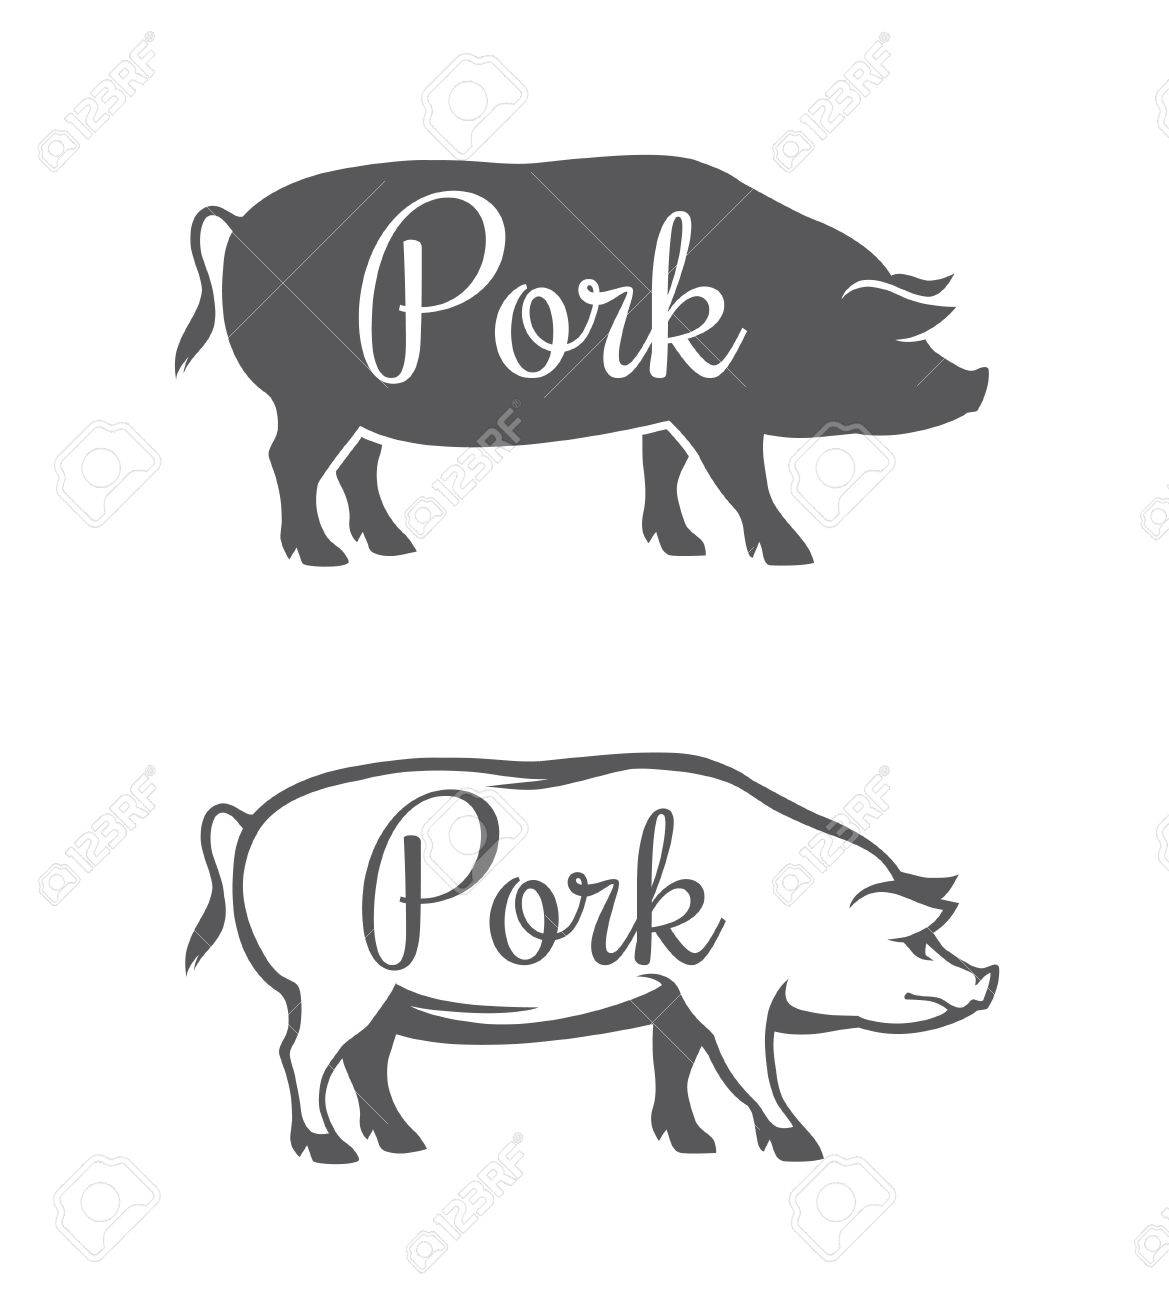 Black Pig Silhouette And Outline Illustration For Pork Meat Or Royalty Free Cliparts Vectors And Stock Illustration Image 53797973 Download 864 silhouette pigs stock illustrations, vectors & clipart for free or amazingly low rates! black pig silhouette and outline illustration for pork meat or